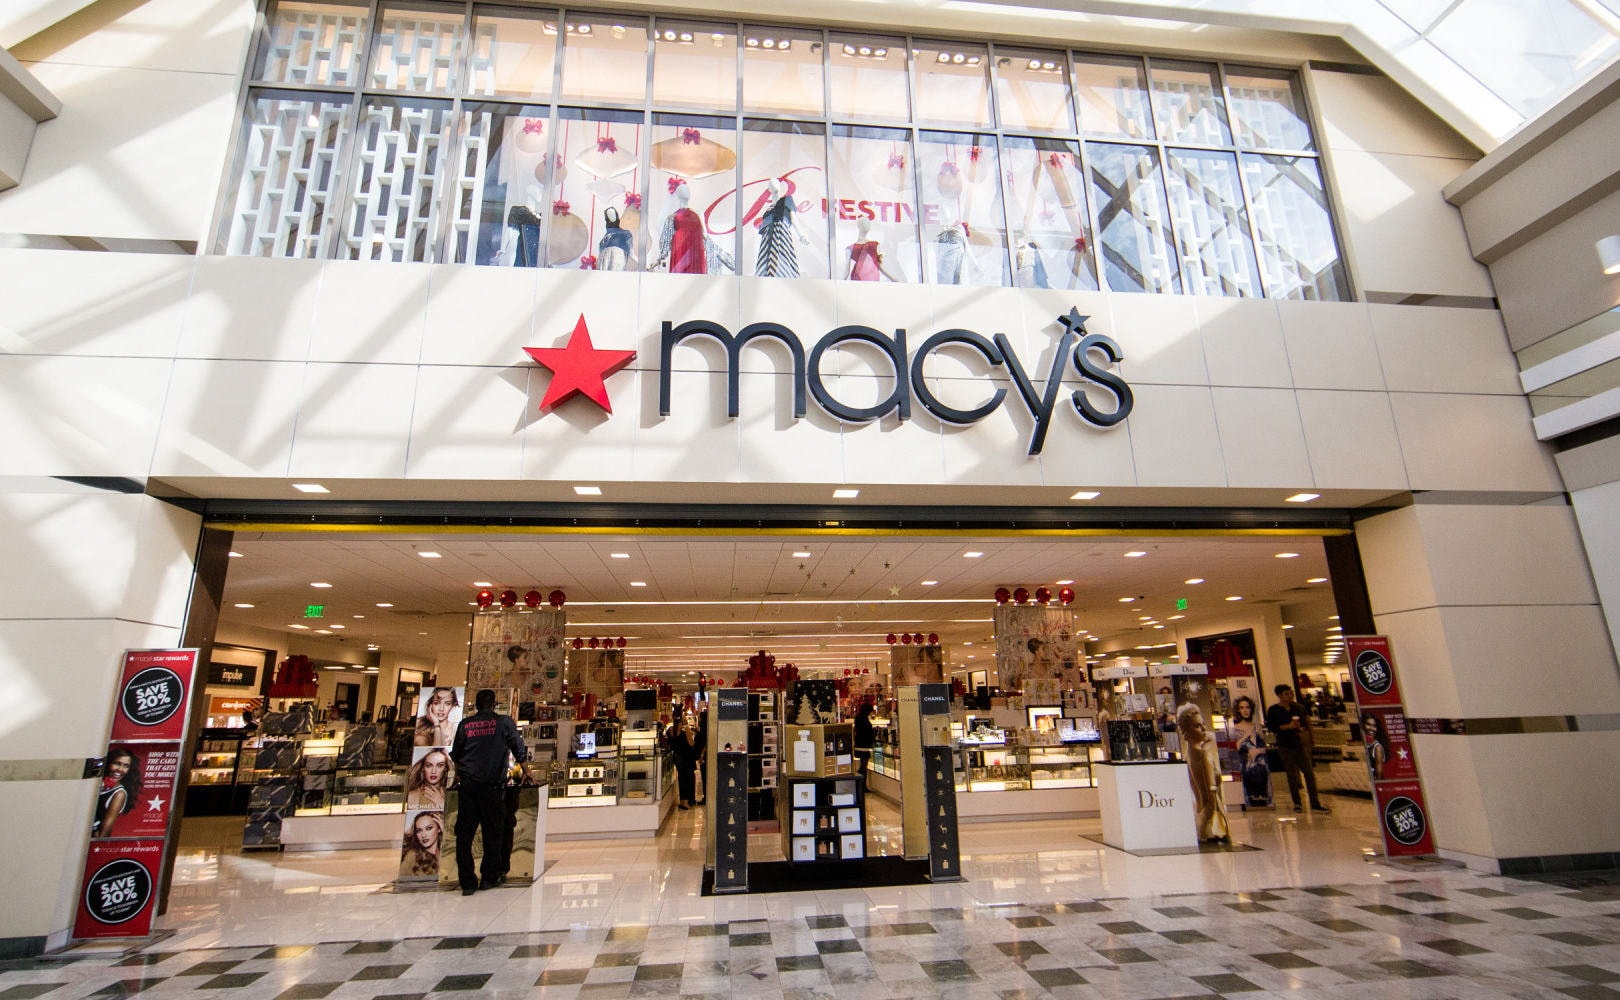 Shuttering Retailers Stores The Most : Macy s shuttering to stores